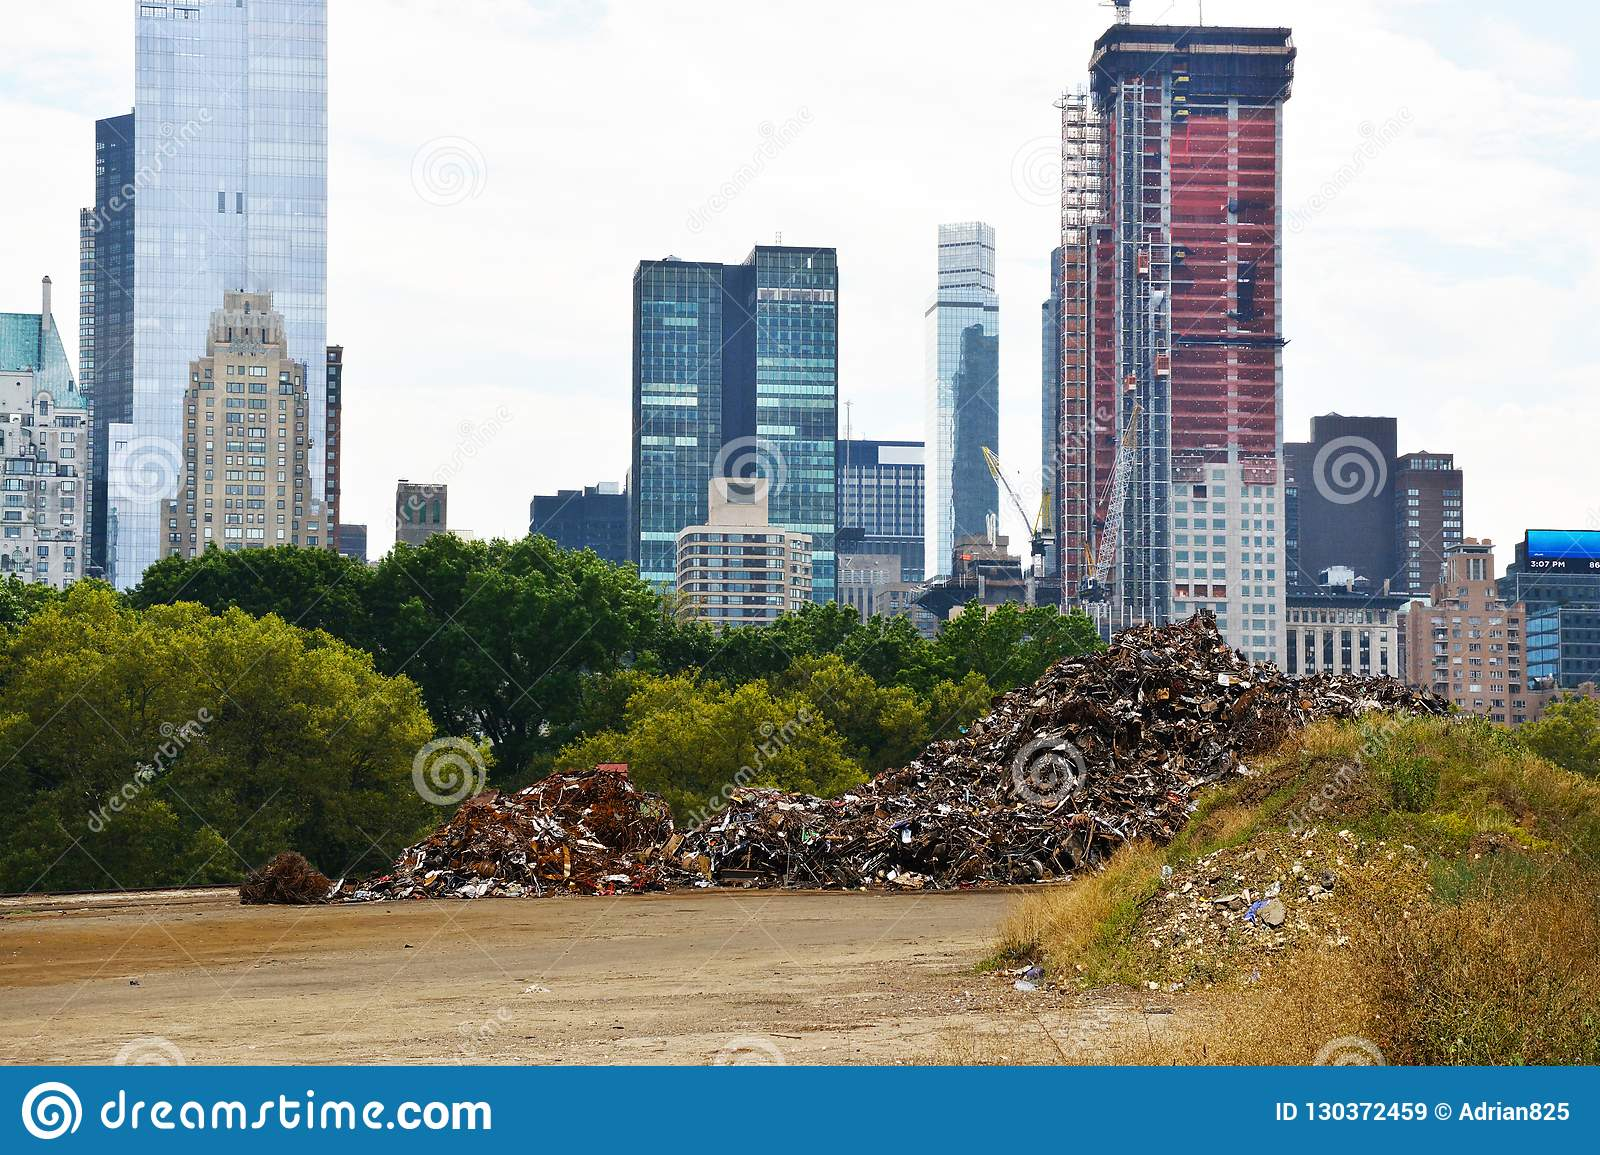 Scrap Metal Pile In Center Of Central Park New York City With Dark Clouds On Sky Pollution Concept Stock Image Image Of Public Nature 130372459